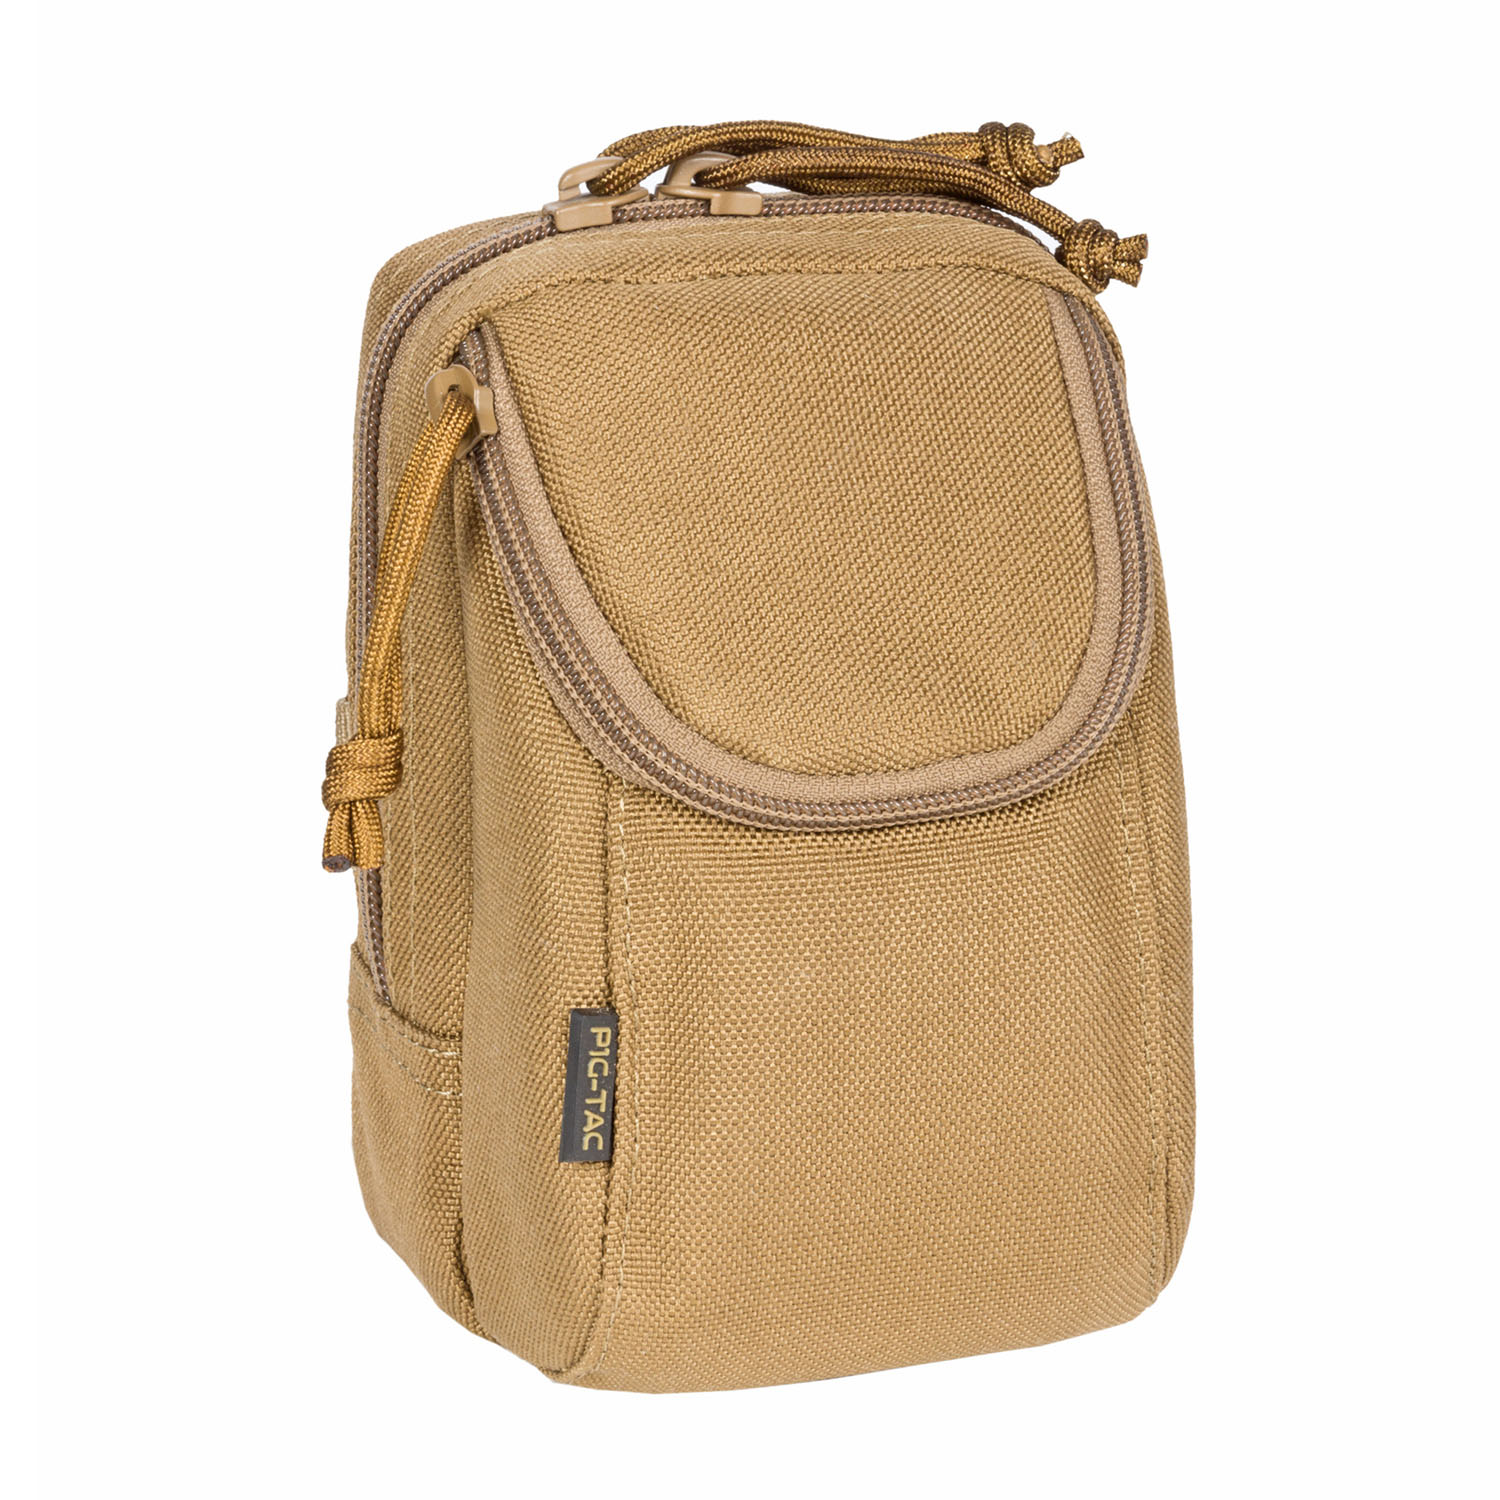 Small observation devices pouch MOLLE